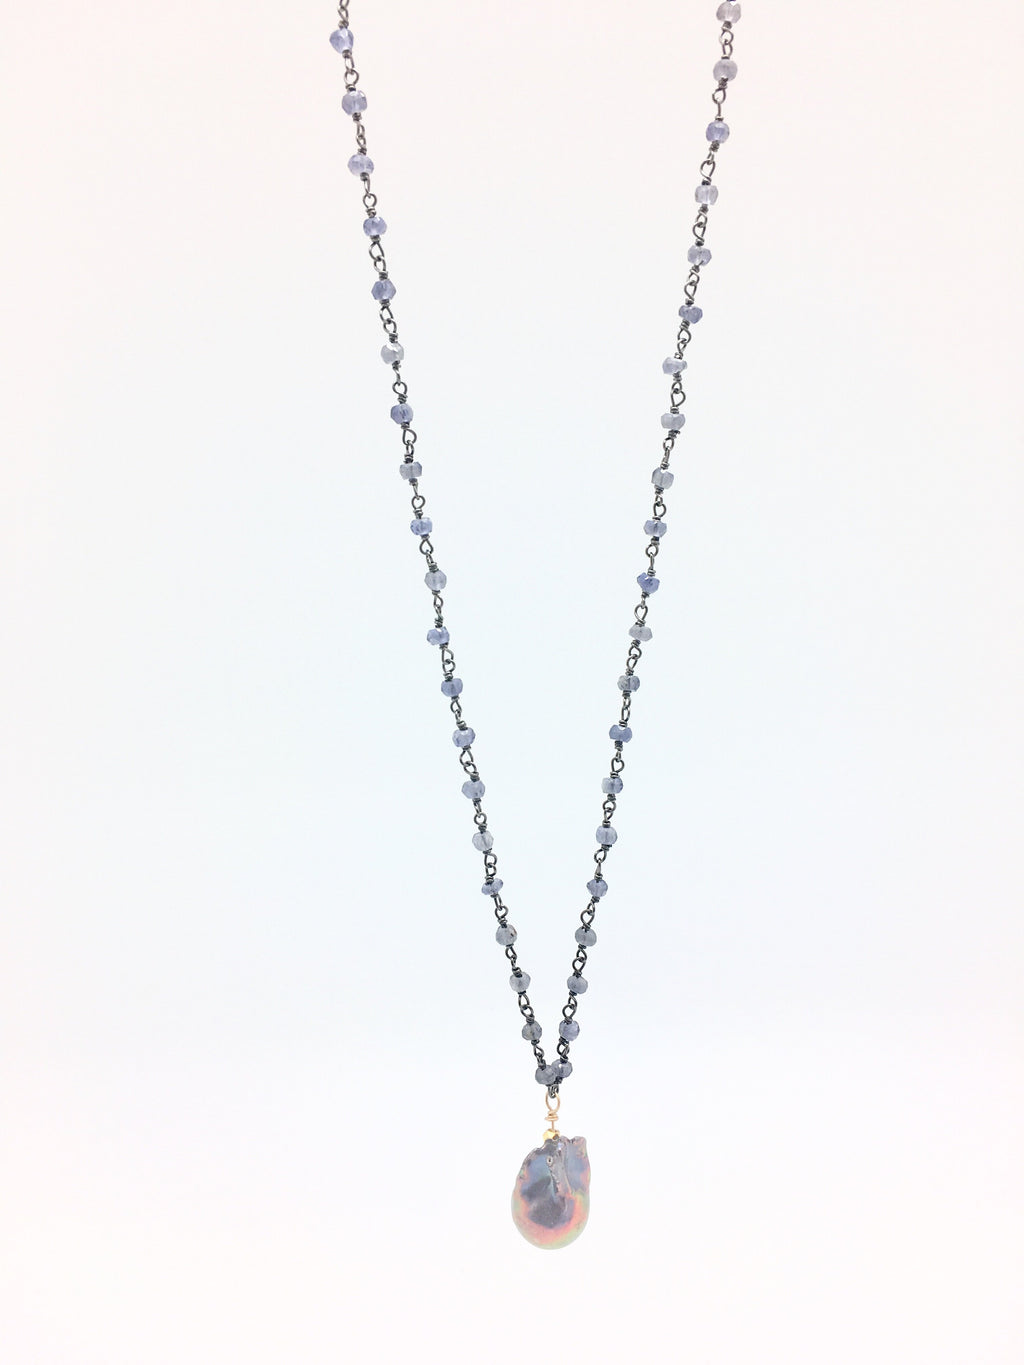 Diddi Long - Iolite / Grey Baroque Pearl